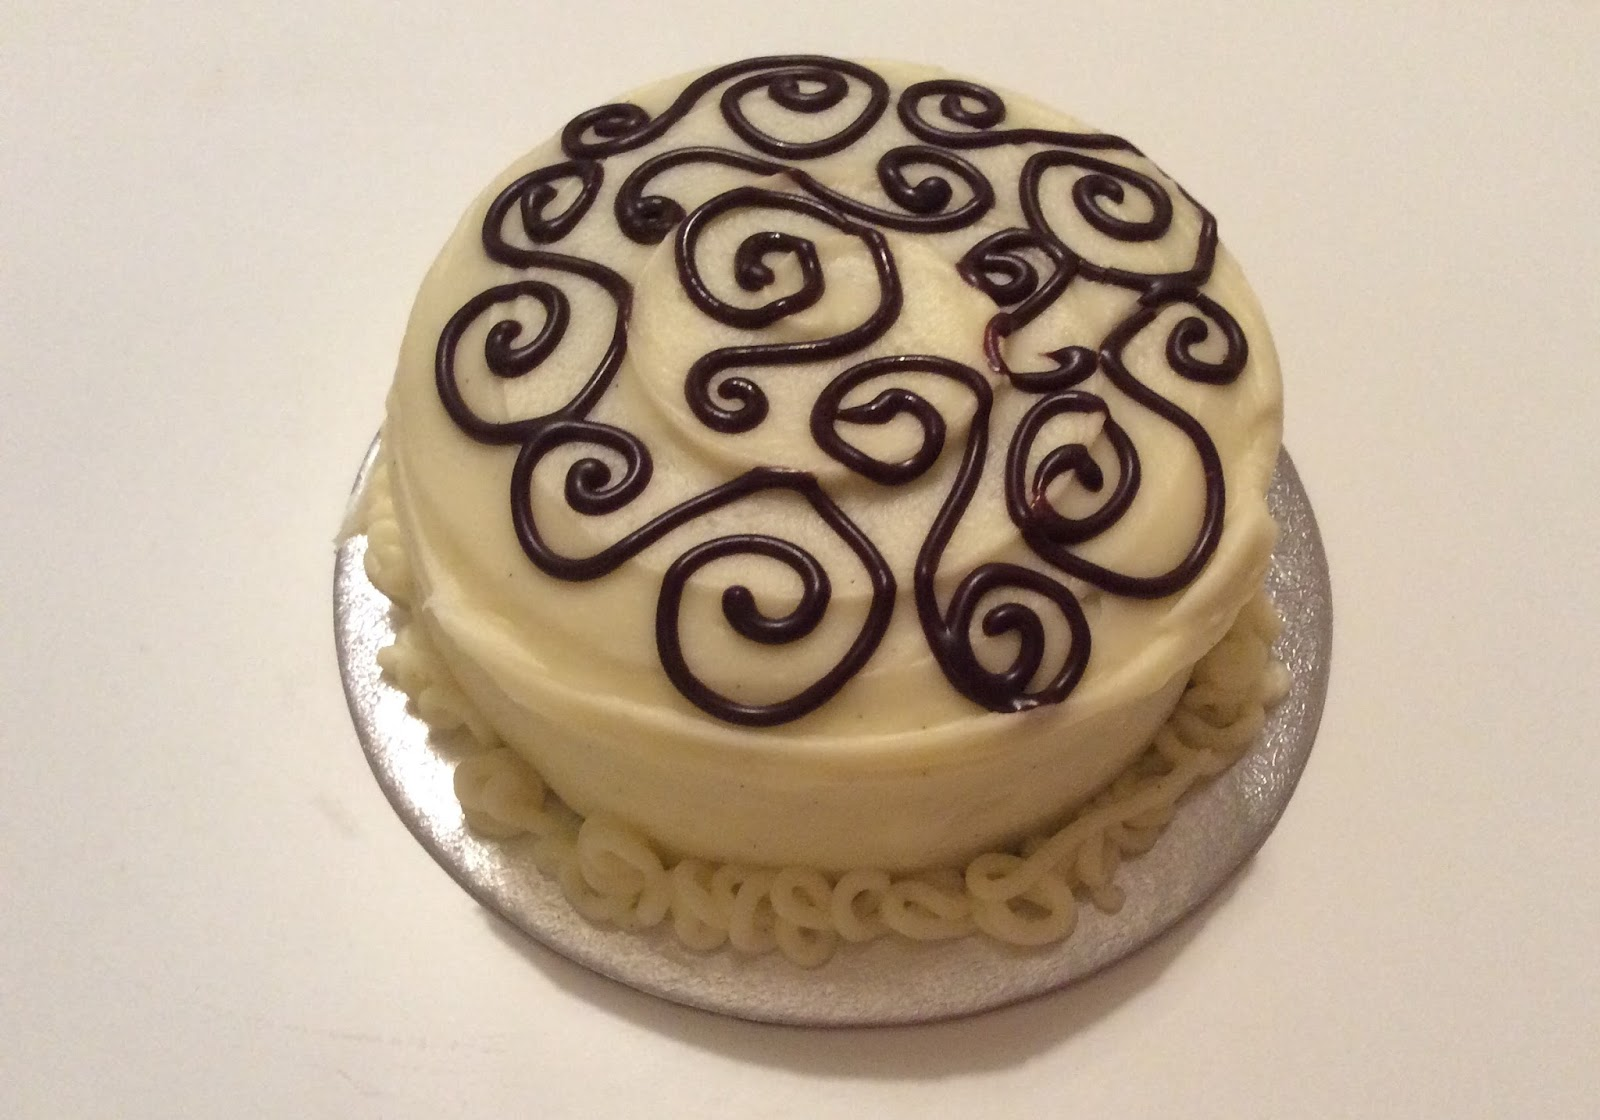 Curly Whirly Cake Review